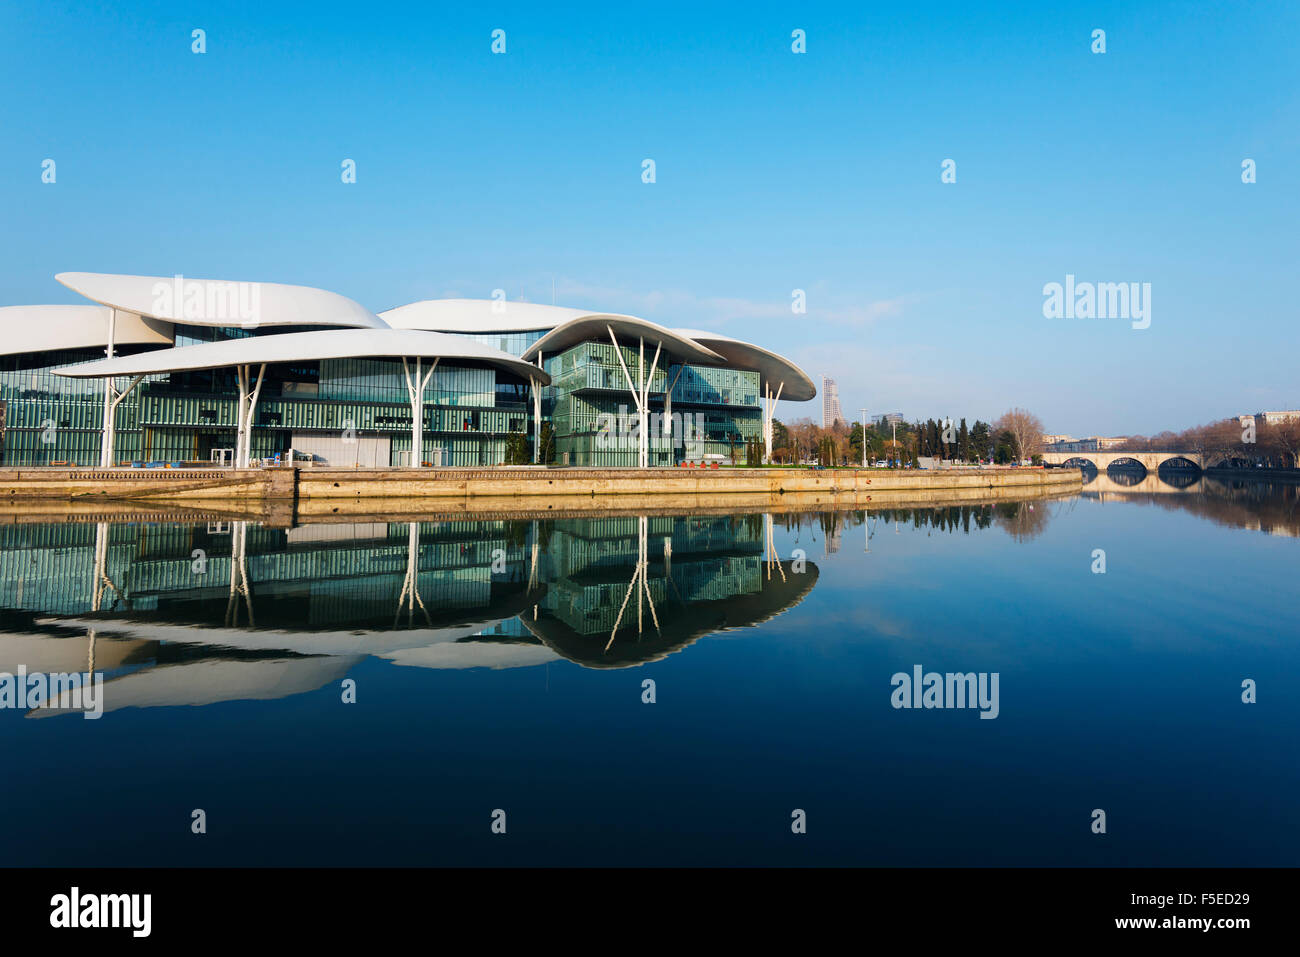 Public Service Hall, House of Justice on Mtkvari River, Tbilisi, Georgia, Caucasus, Central Asia, Asia - Stock Image